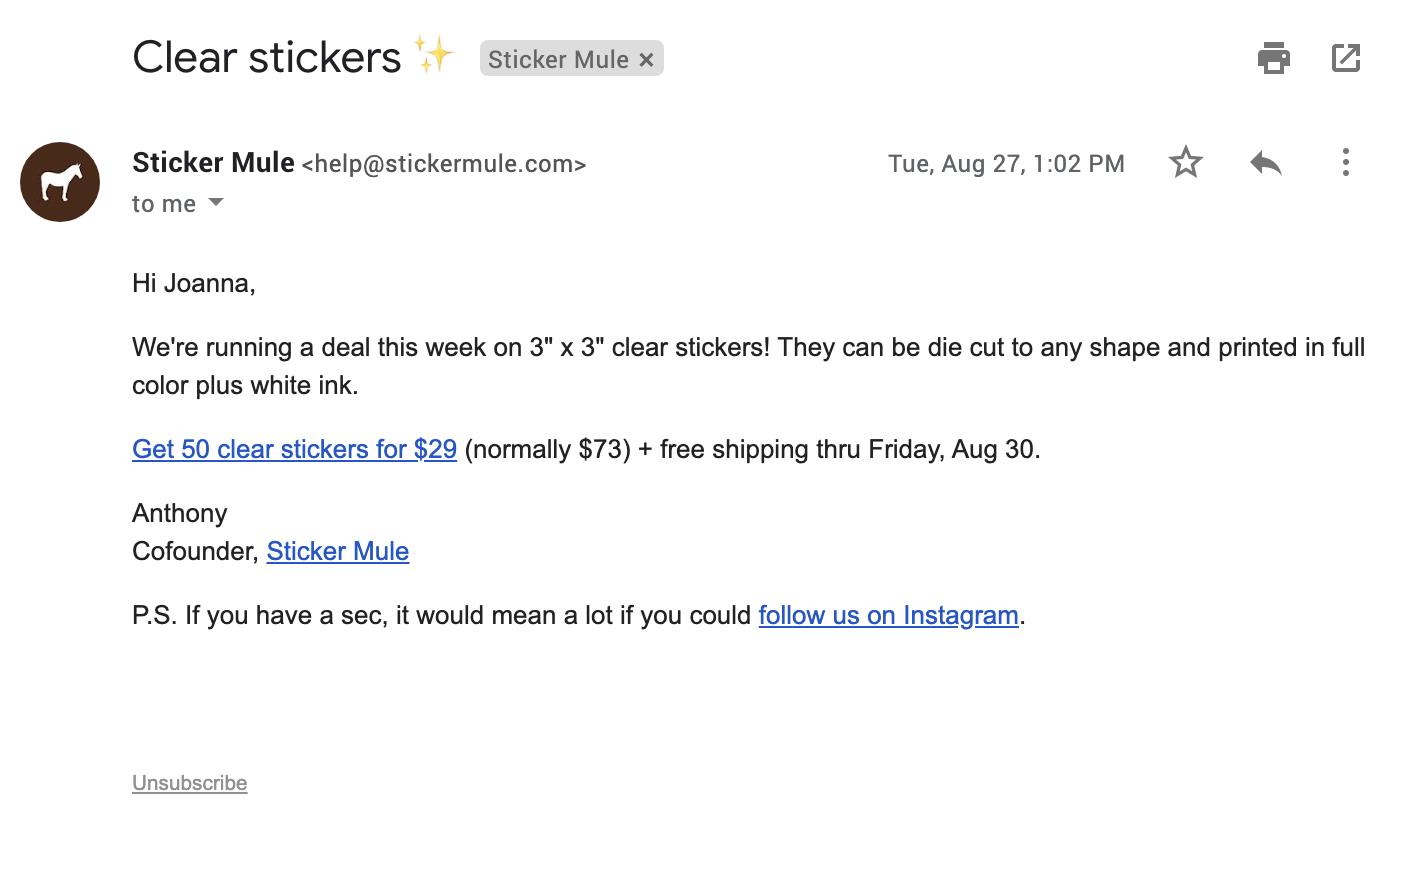 Sticker Mule email.